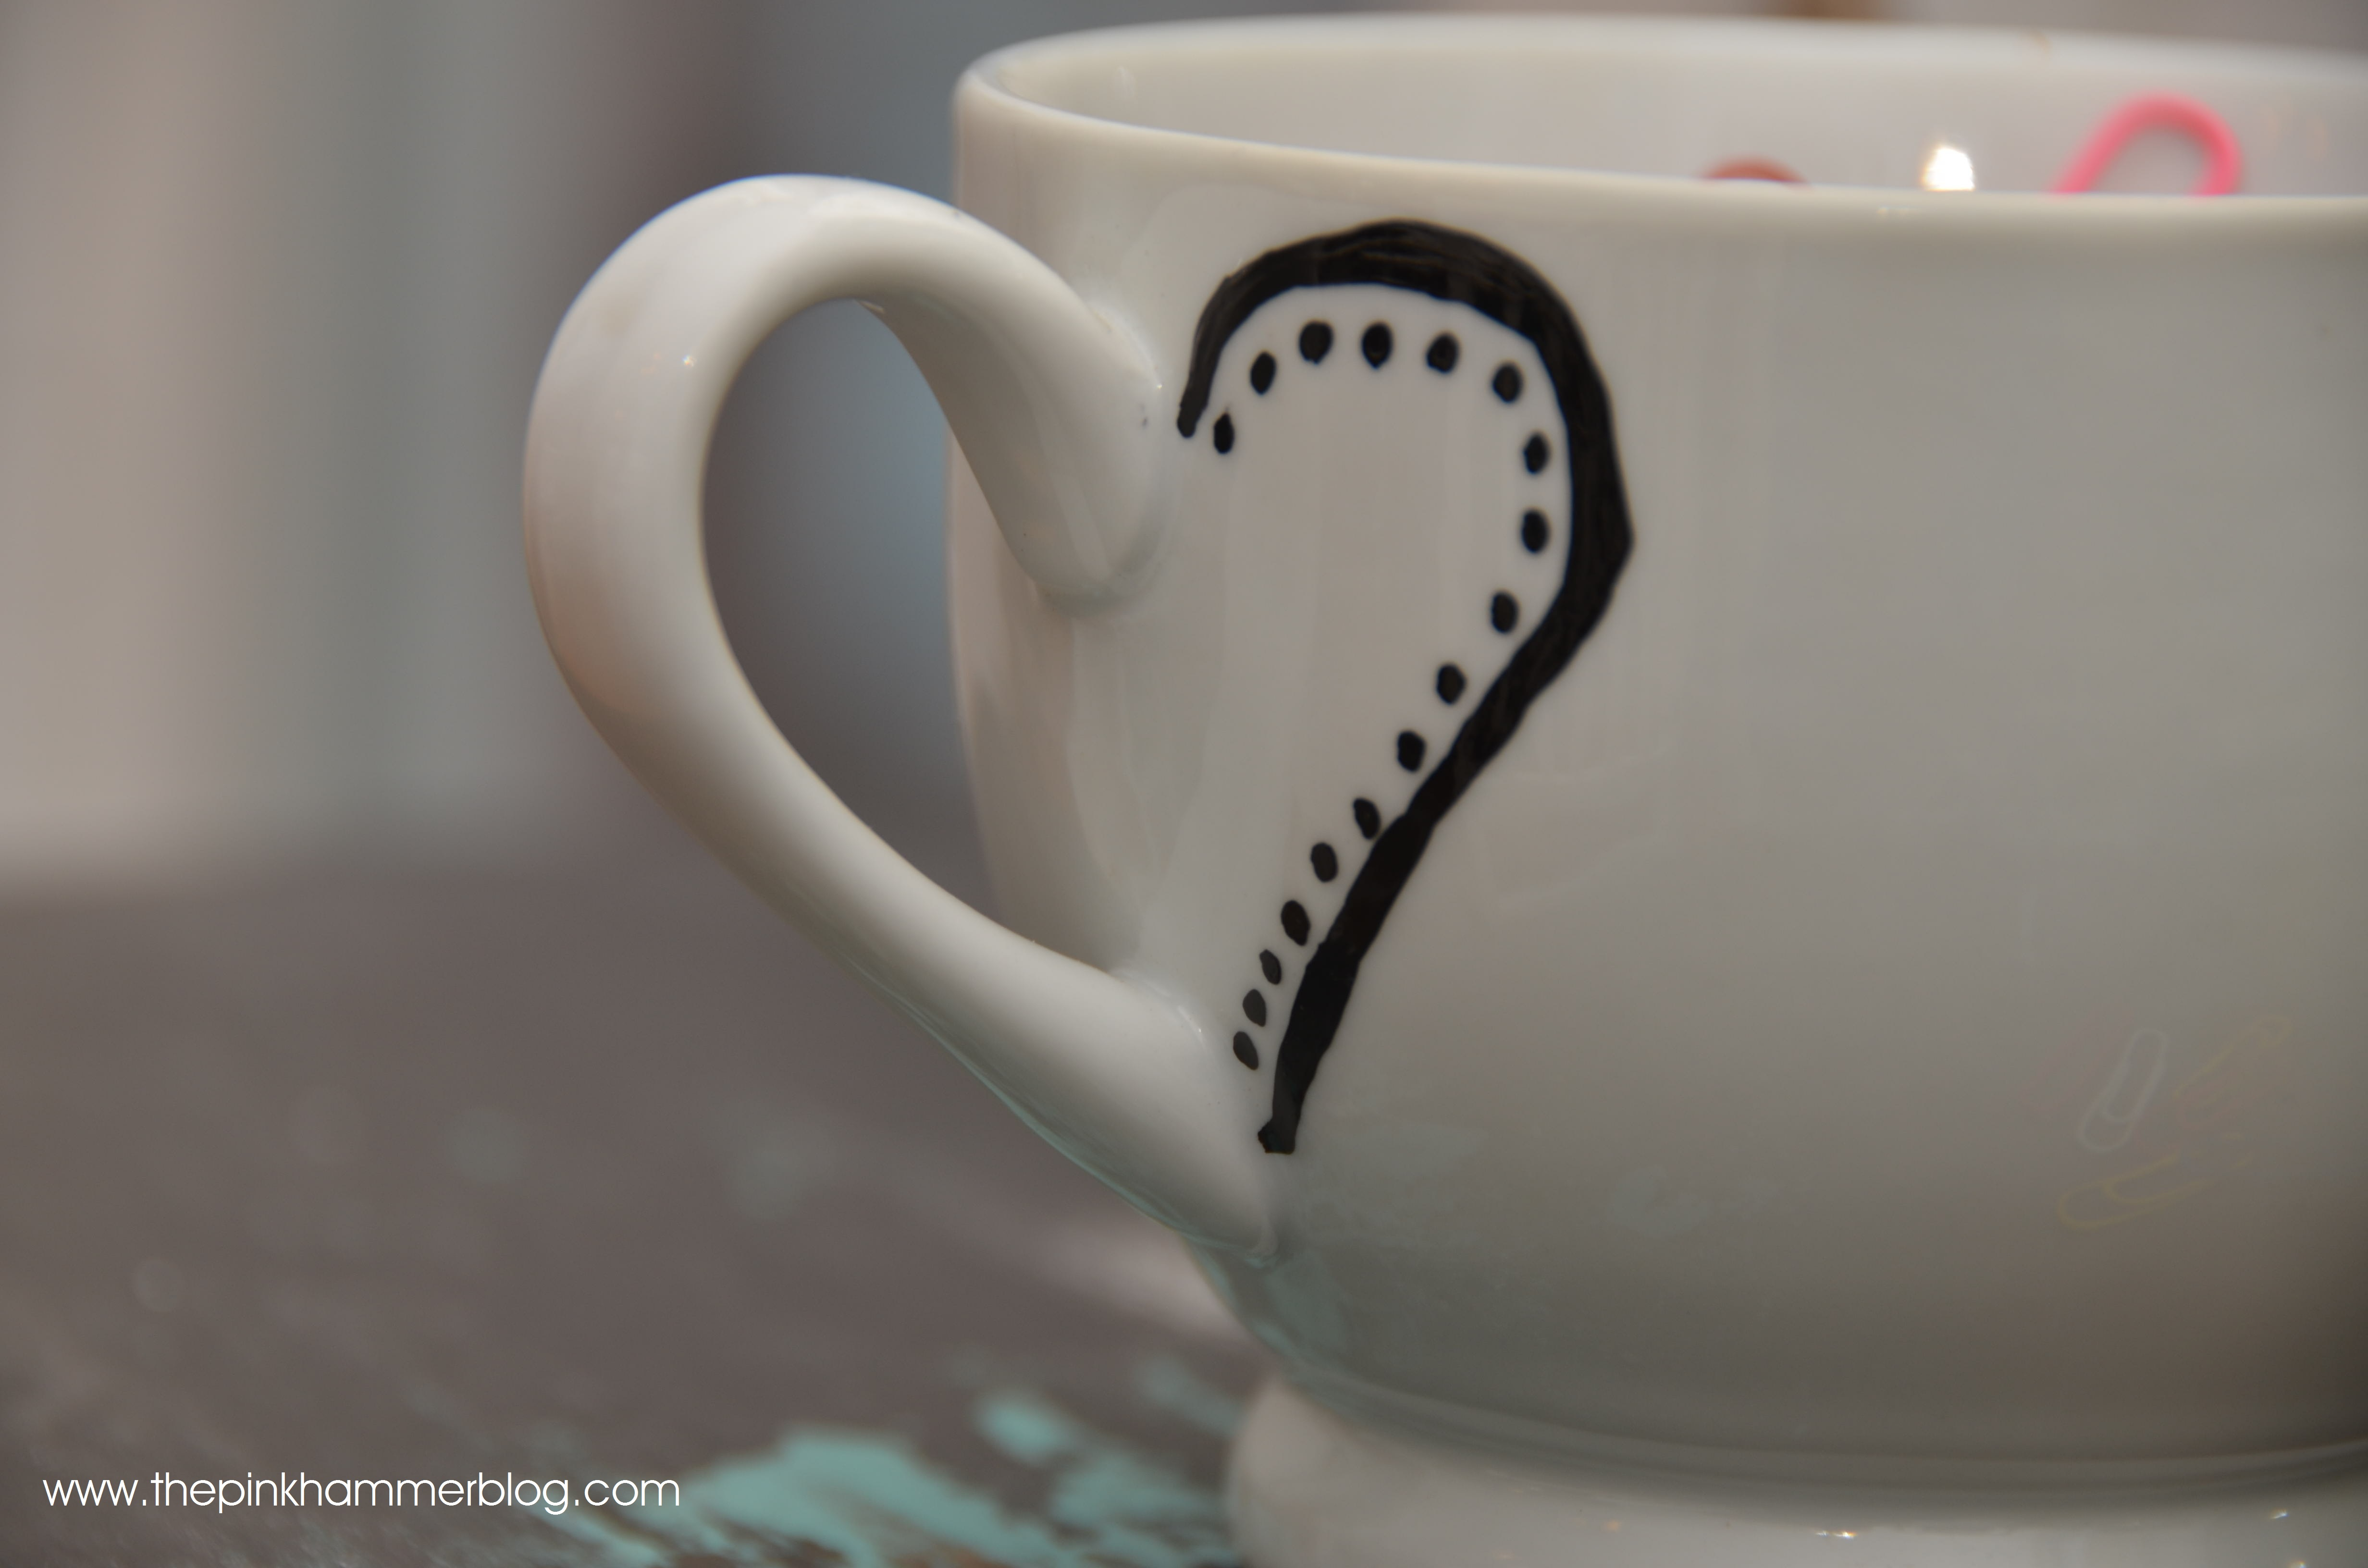 How To Write With Sharpies On Mugs The Pink Hammer Blog